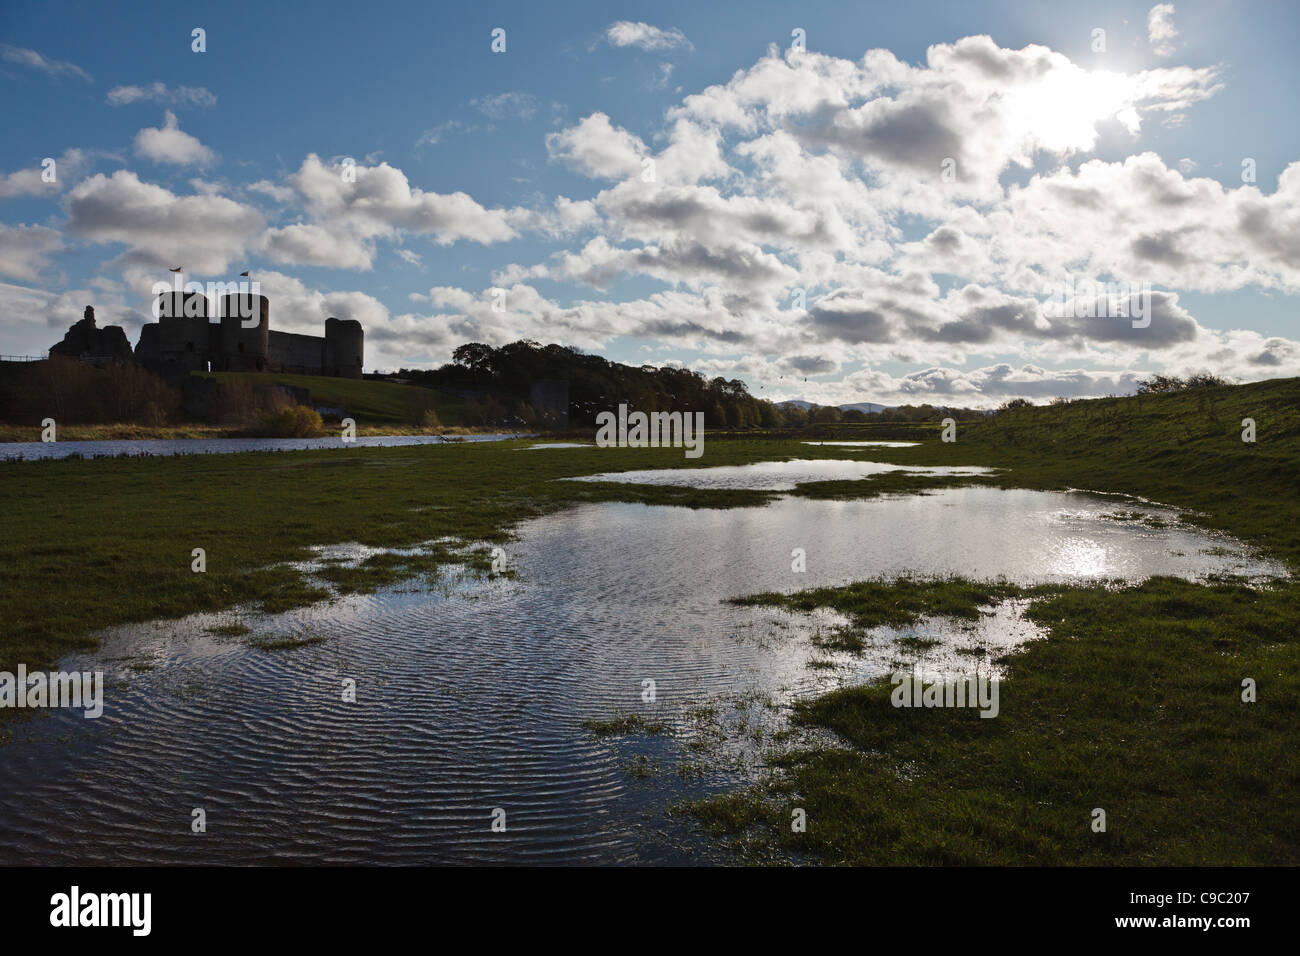 Rhuddlan Castle and River Clwyd, Denbighshire, Wales - Stock Image